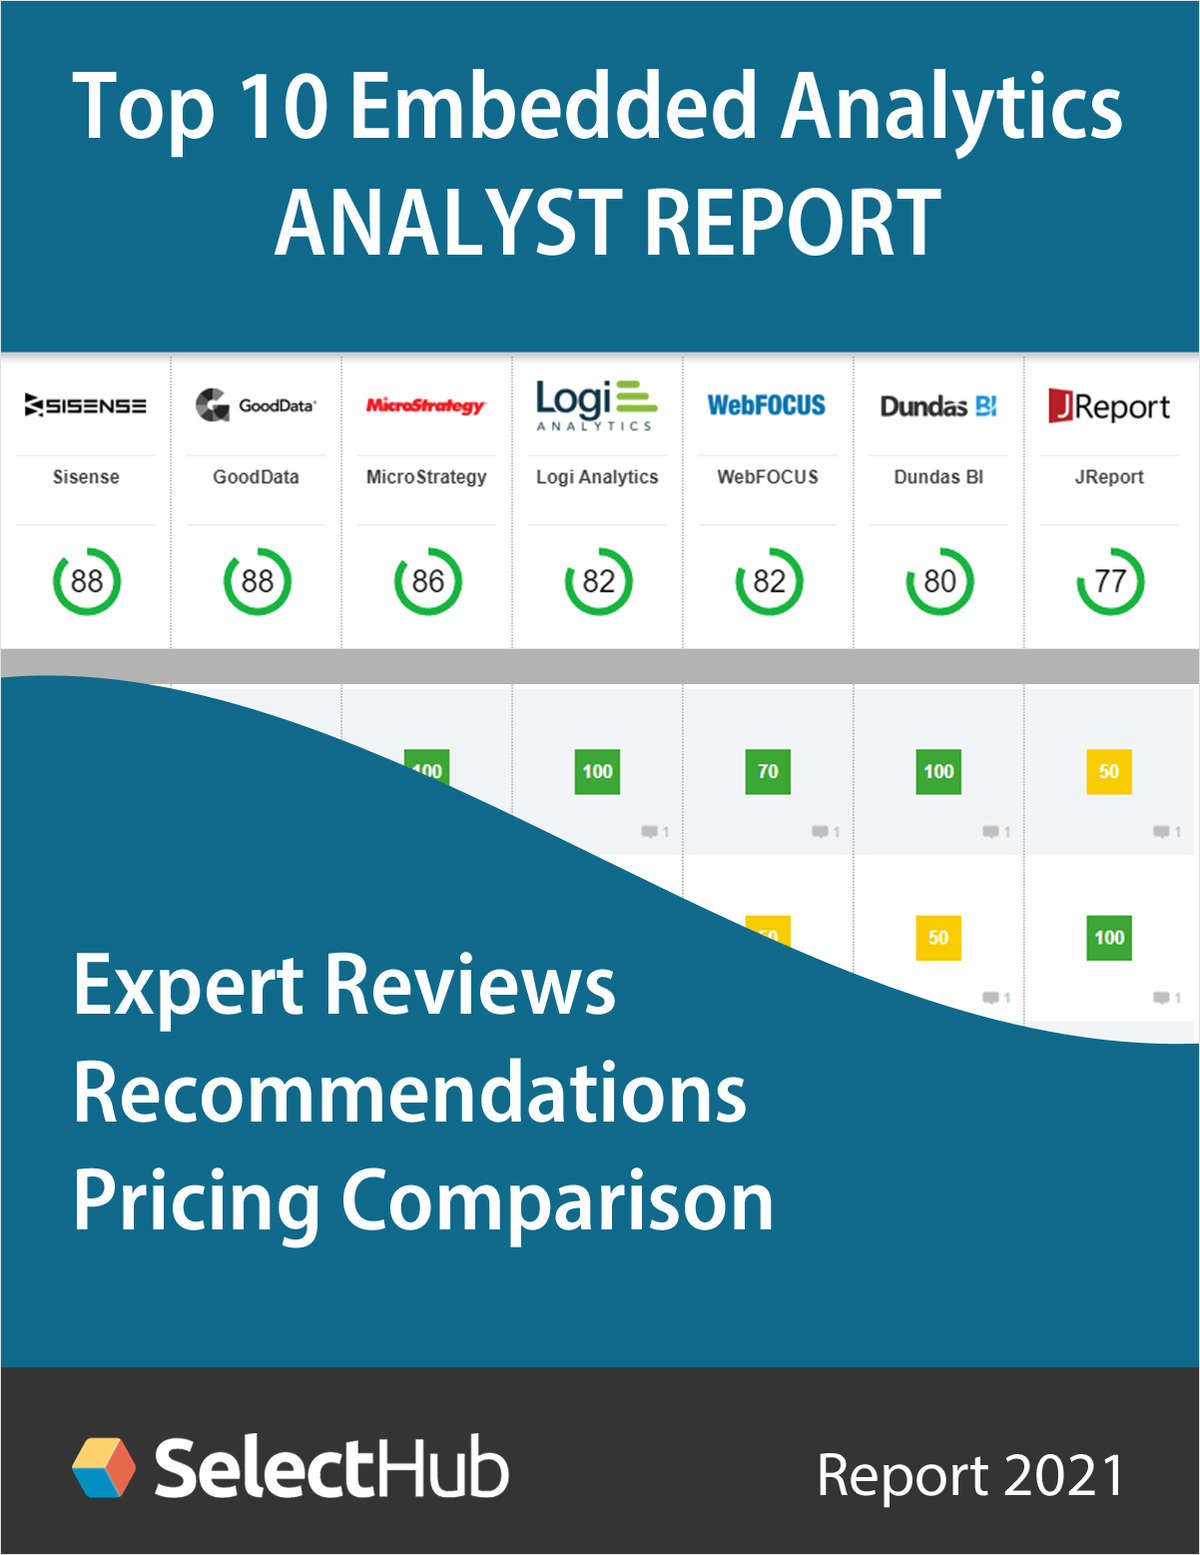 Top 10 Embedded Analytics Tools for 2021--Free Analyst Report